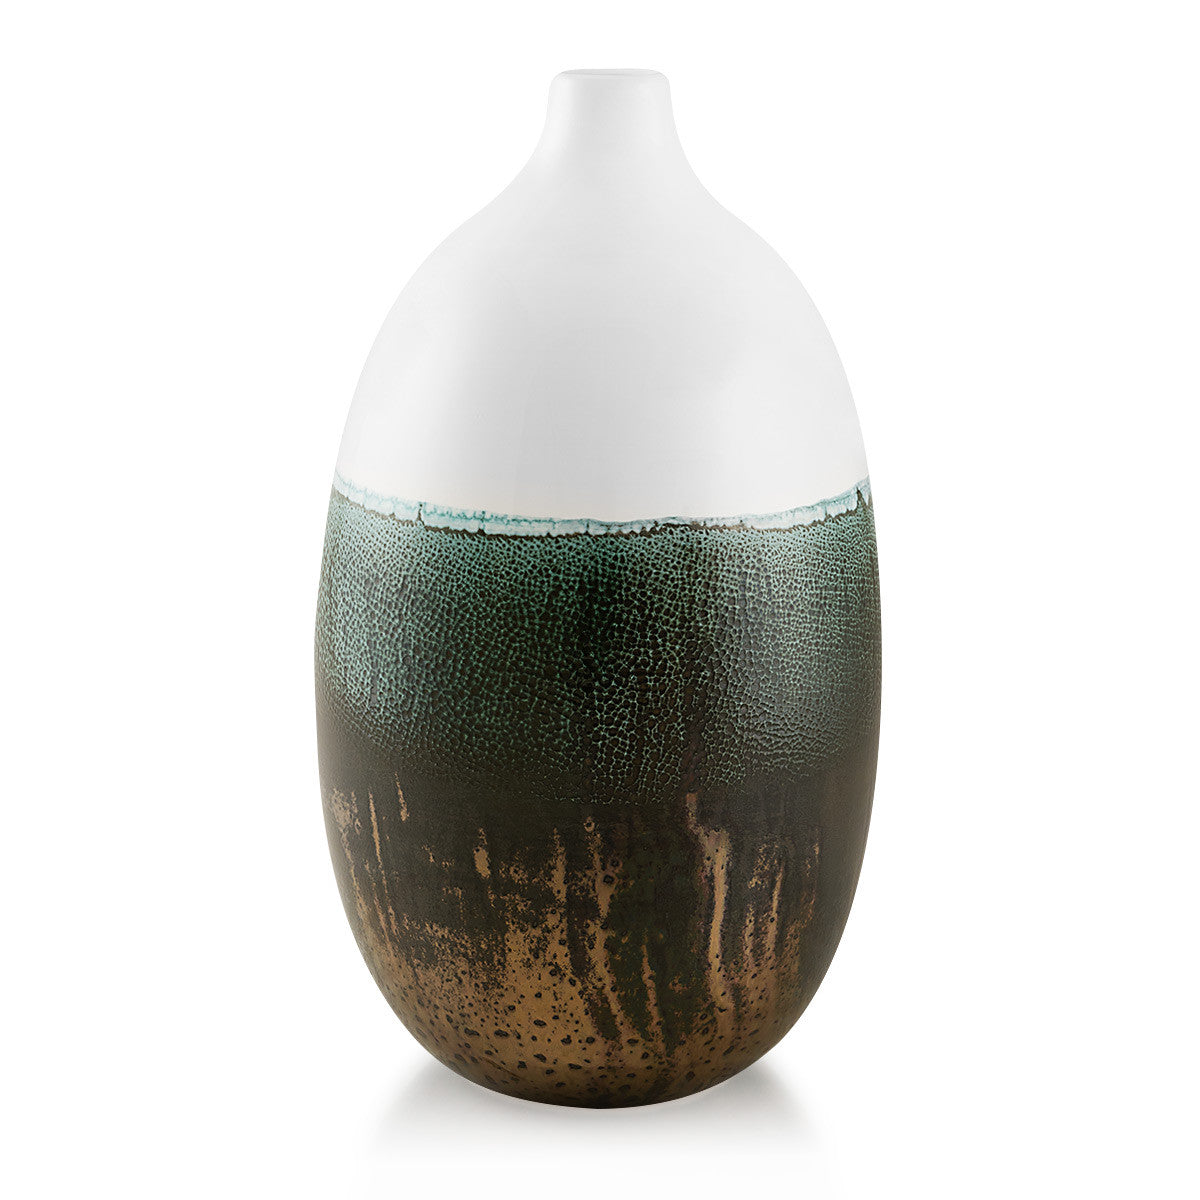 Handmade pottery Decorative vases reactive glaze Modern design